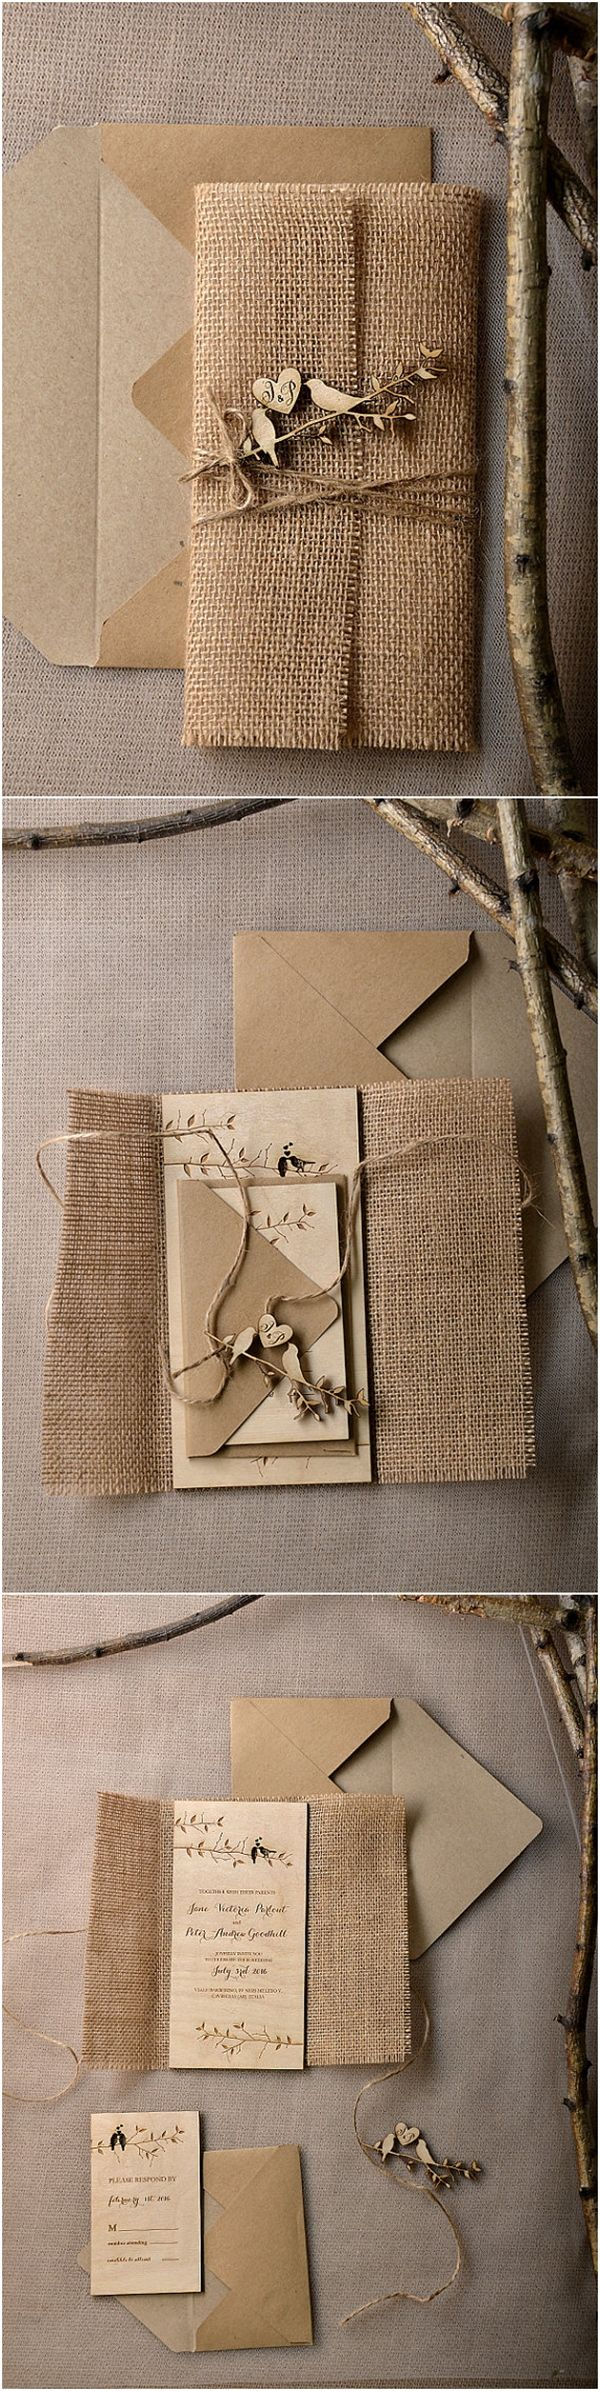 Best 25+ Invitation cards ideas on Pinterest | Wedding invitation ...